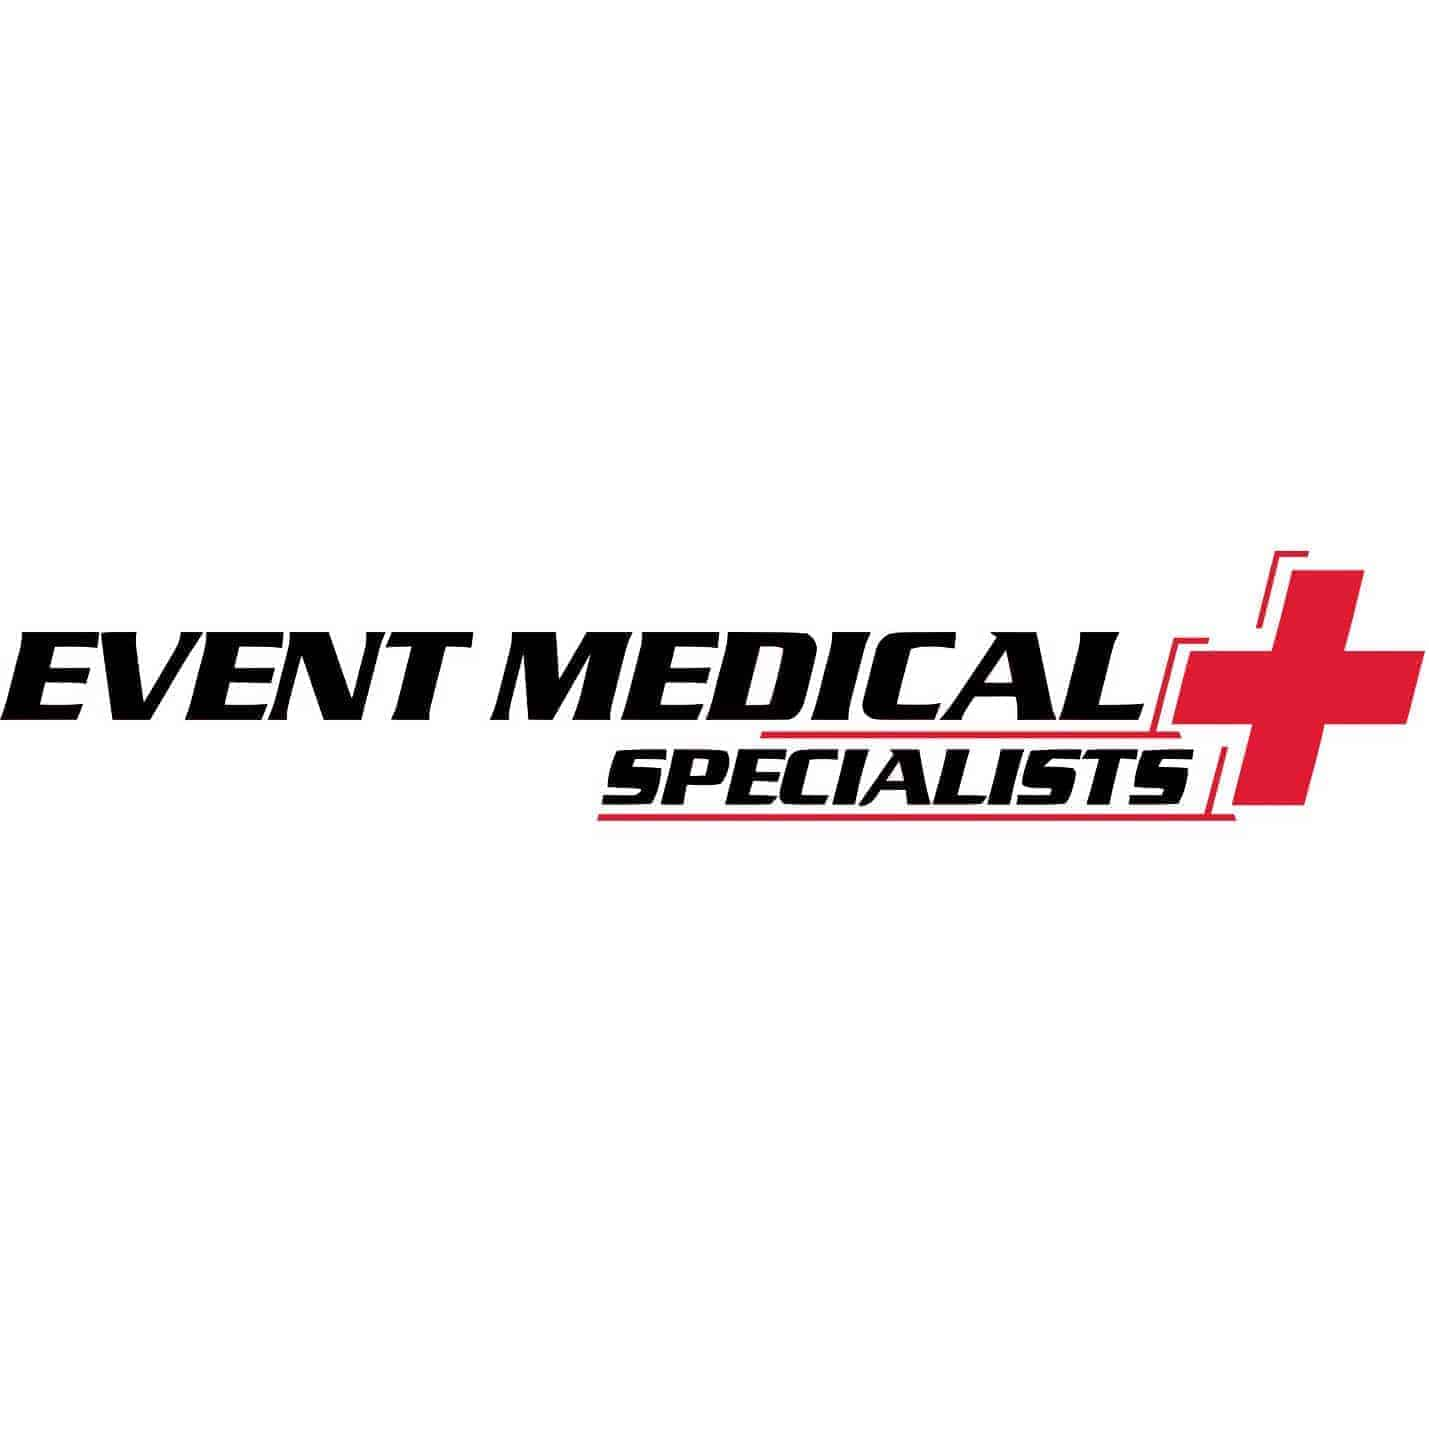 Event Medical Specialists